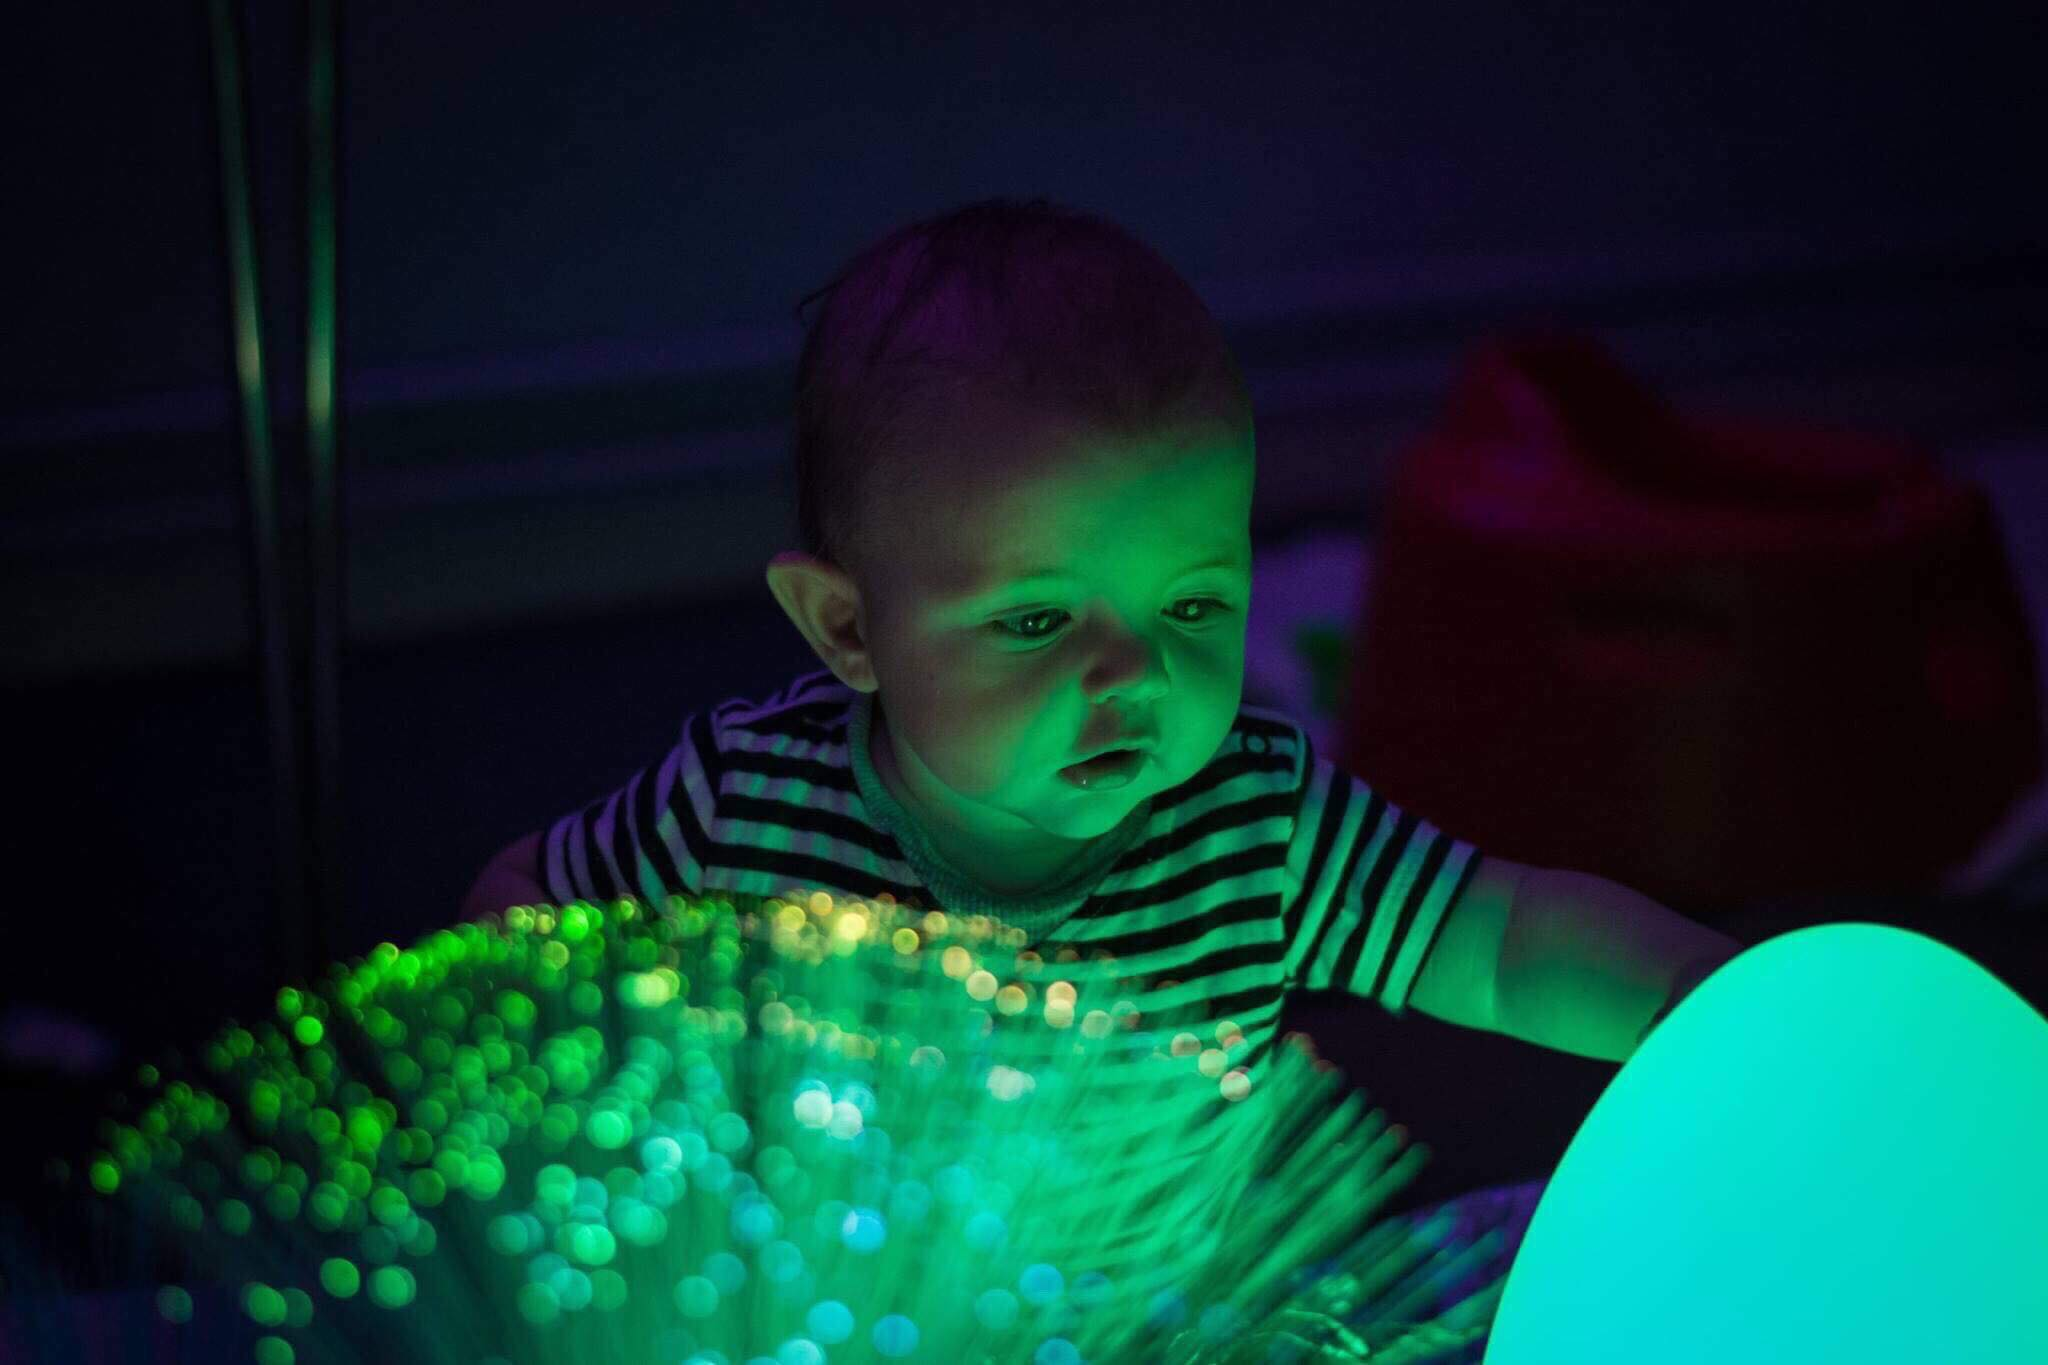 A little baby enjoys some sensory input at Little Glow in Mansfield